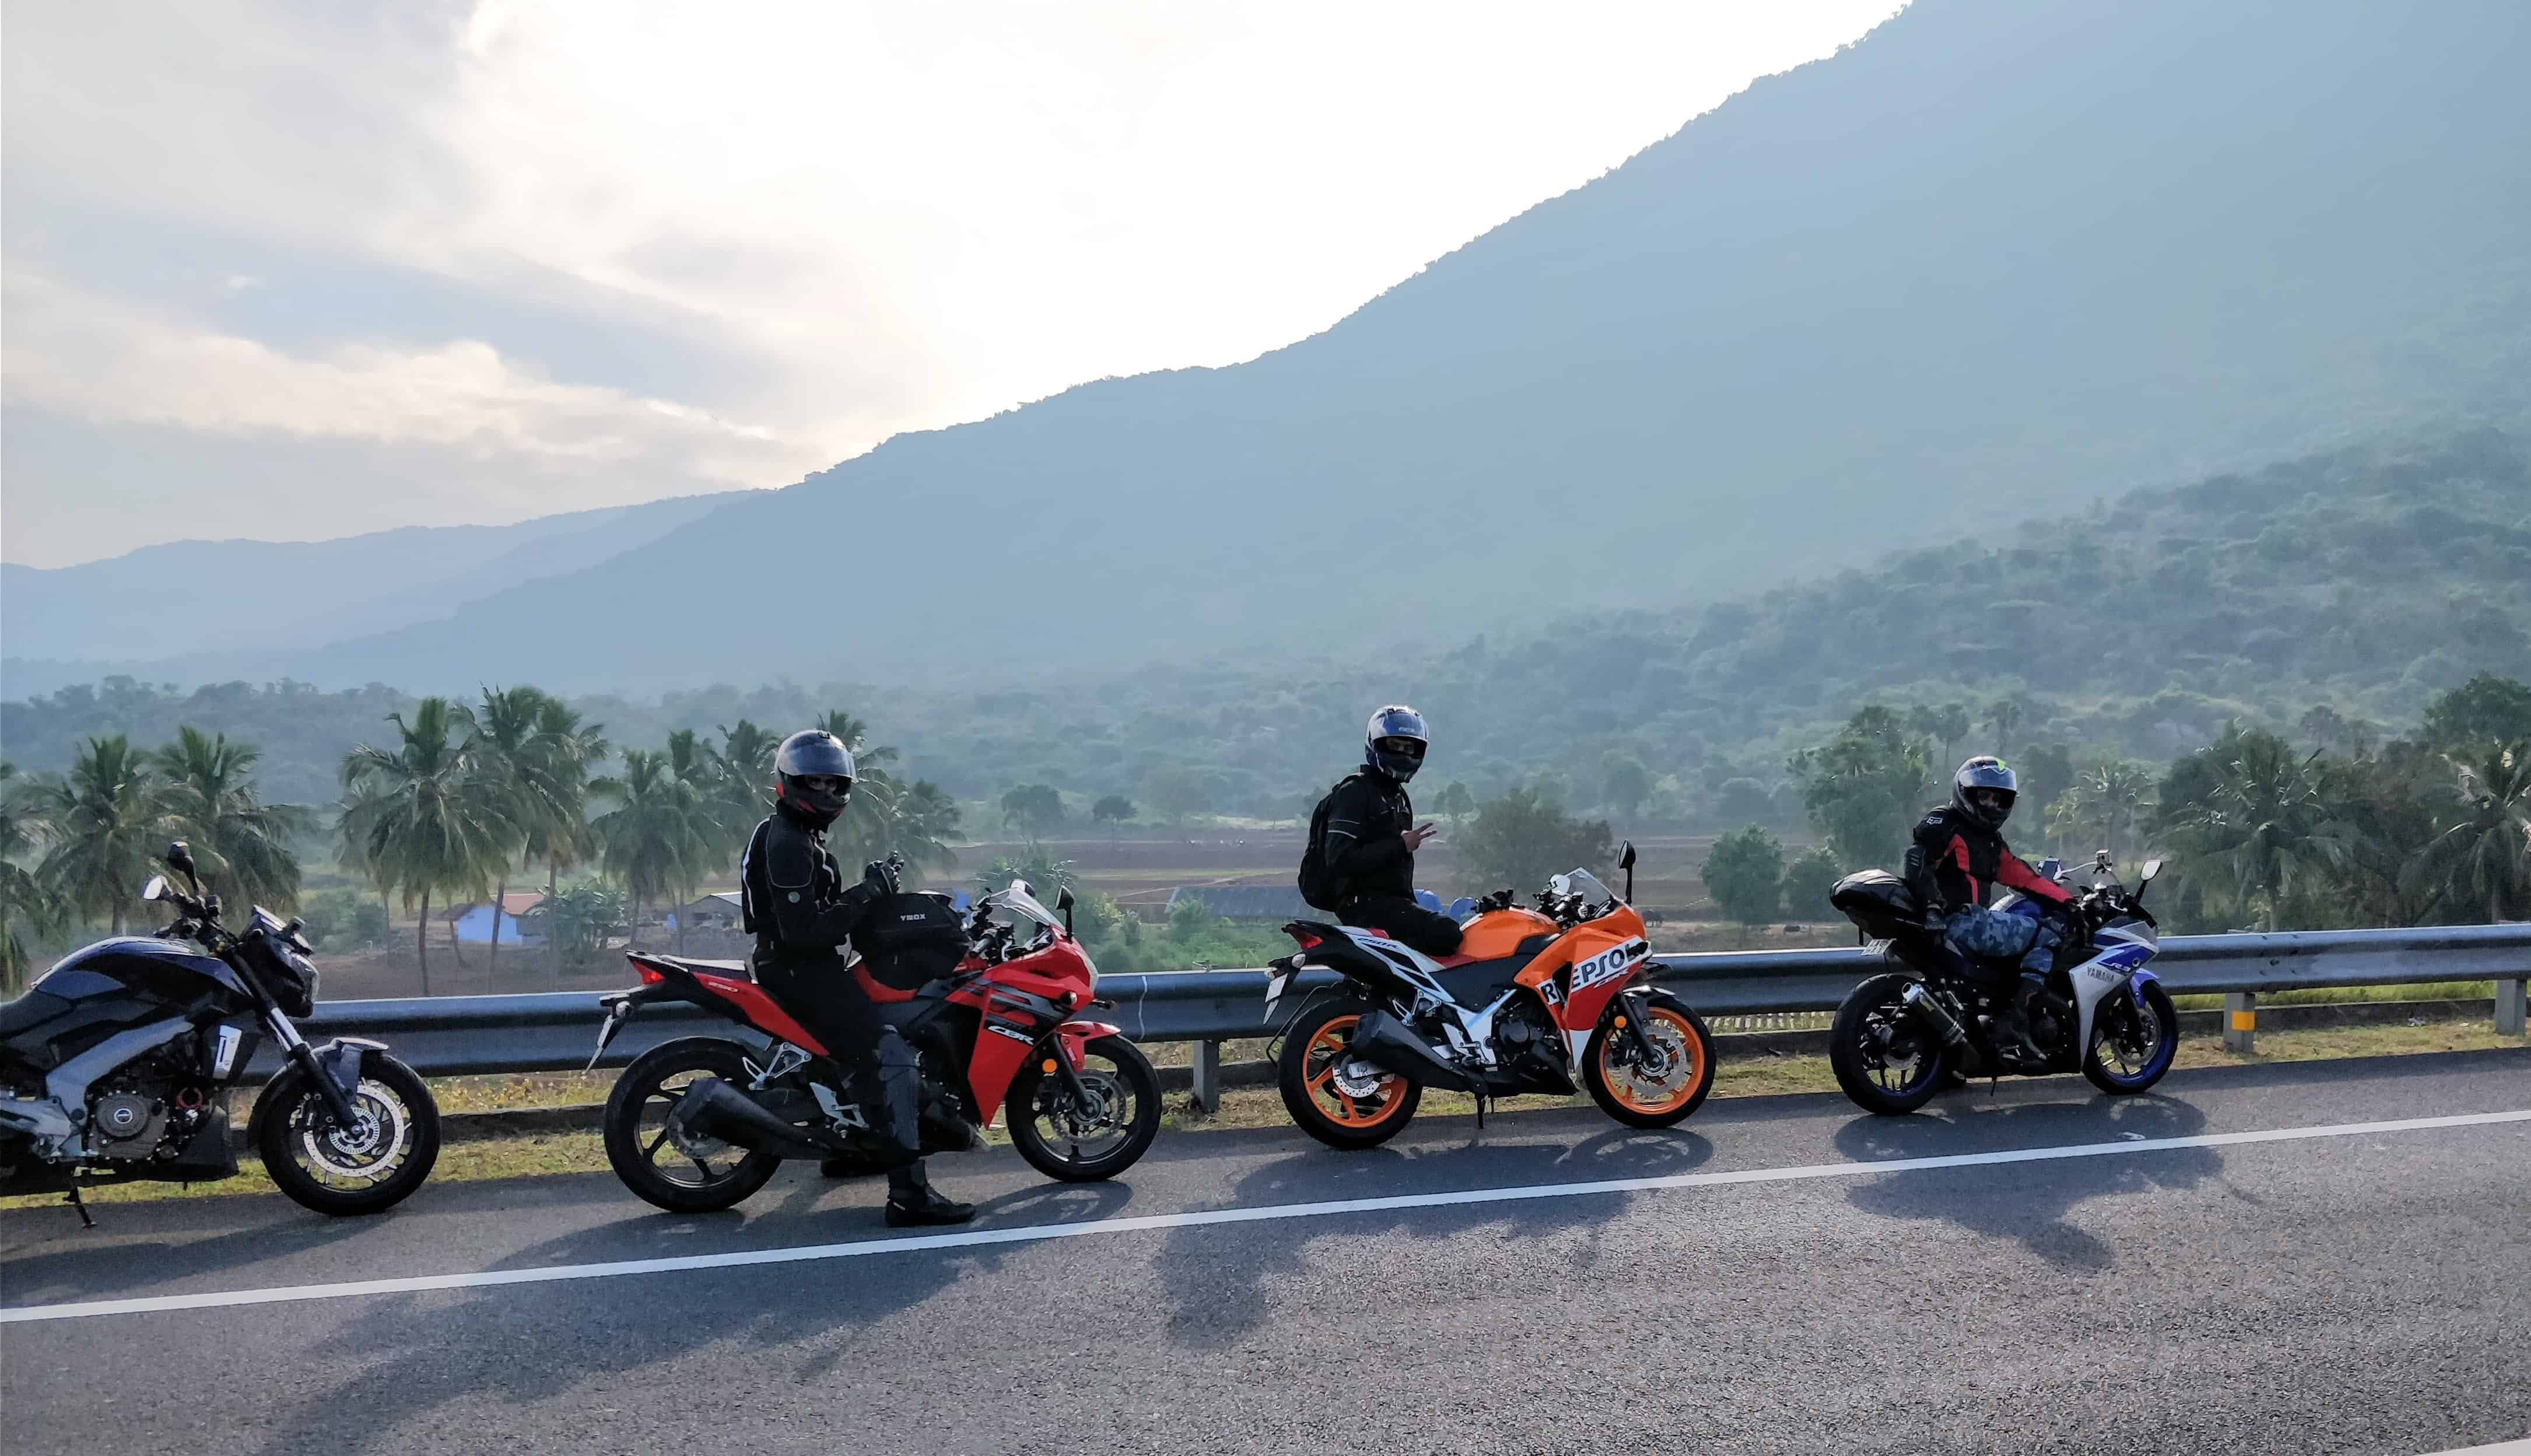 Motorcycle group riding: motorcycling experience personified